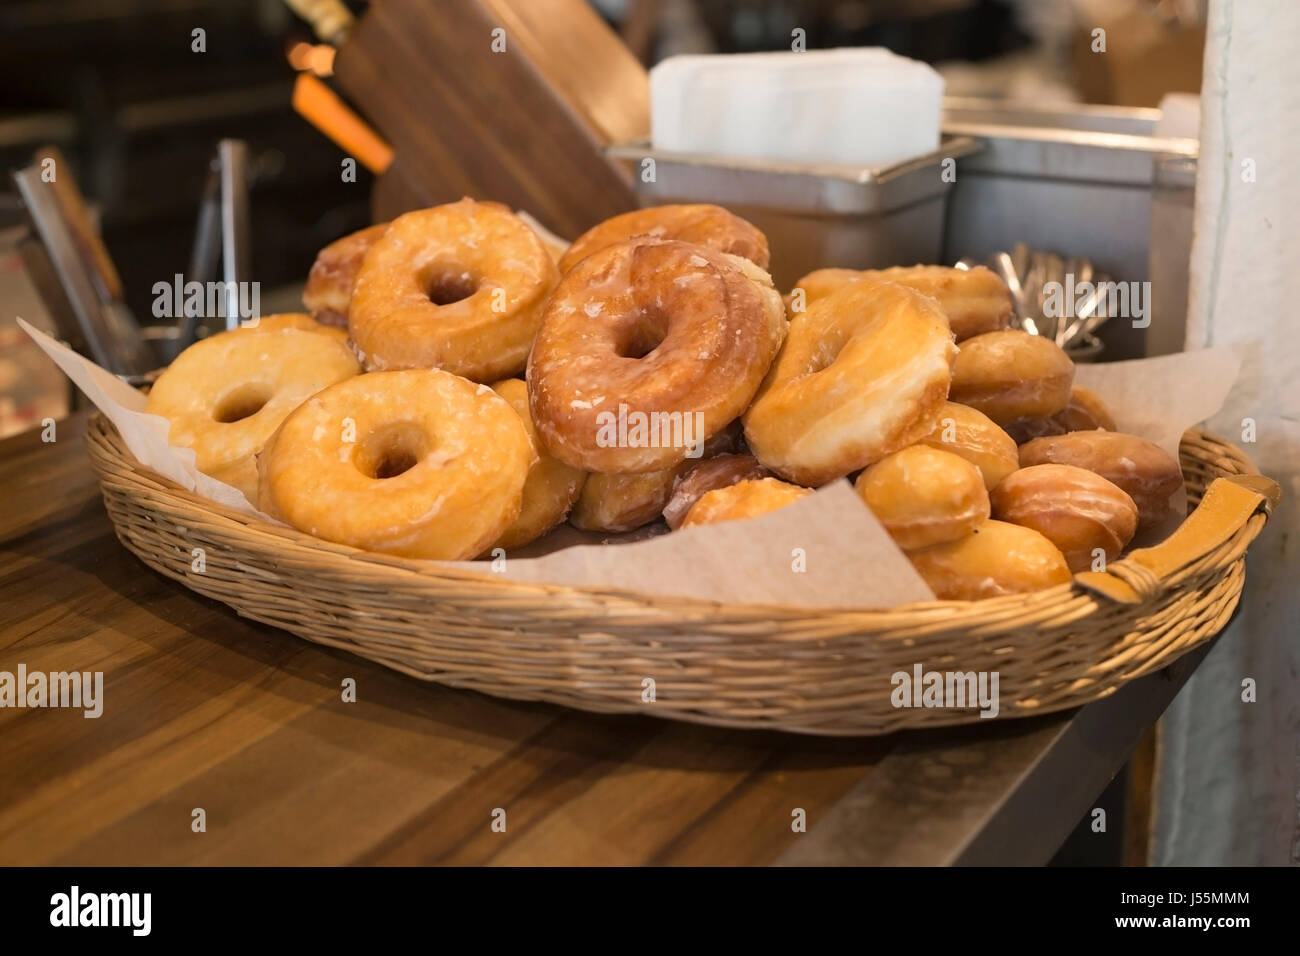 Basket of fresh glazed doughnuts in the kitchen at Native Tongues taqueria - Stock Image